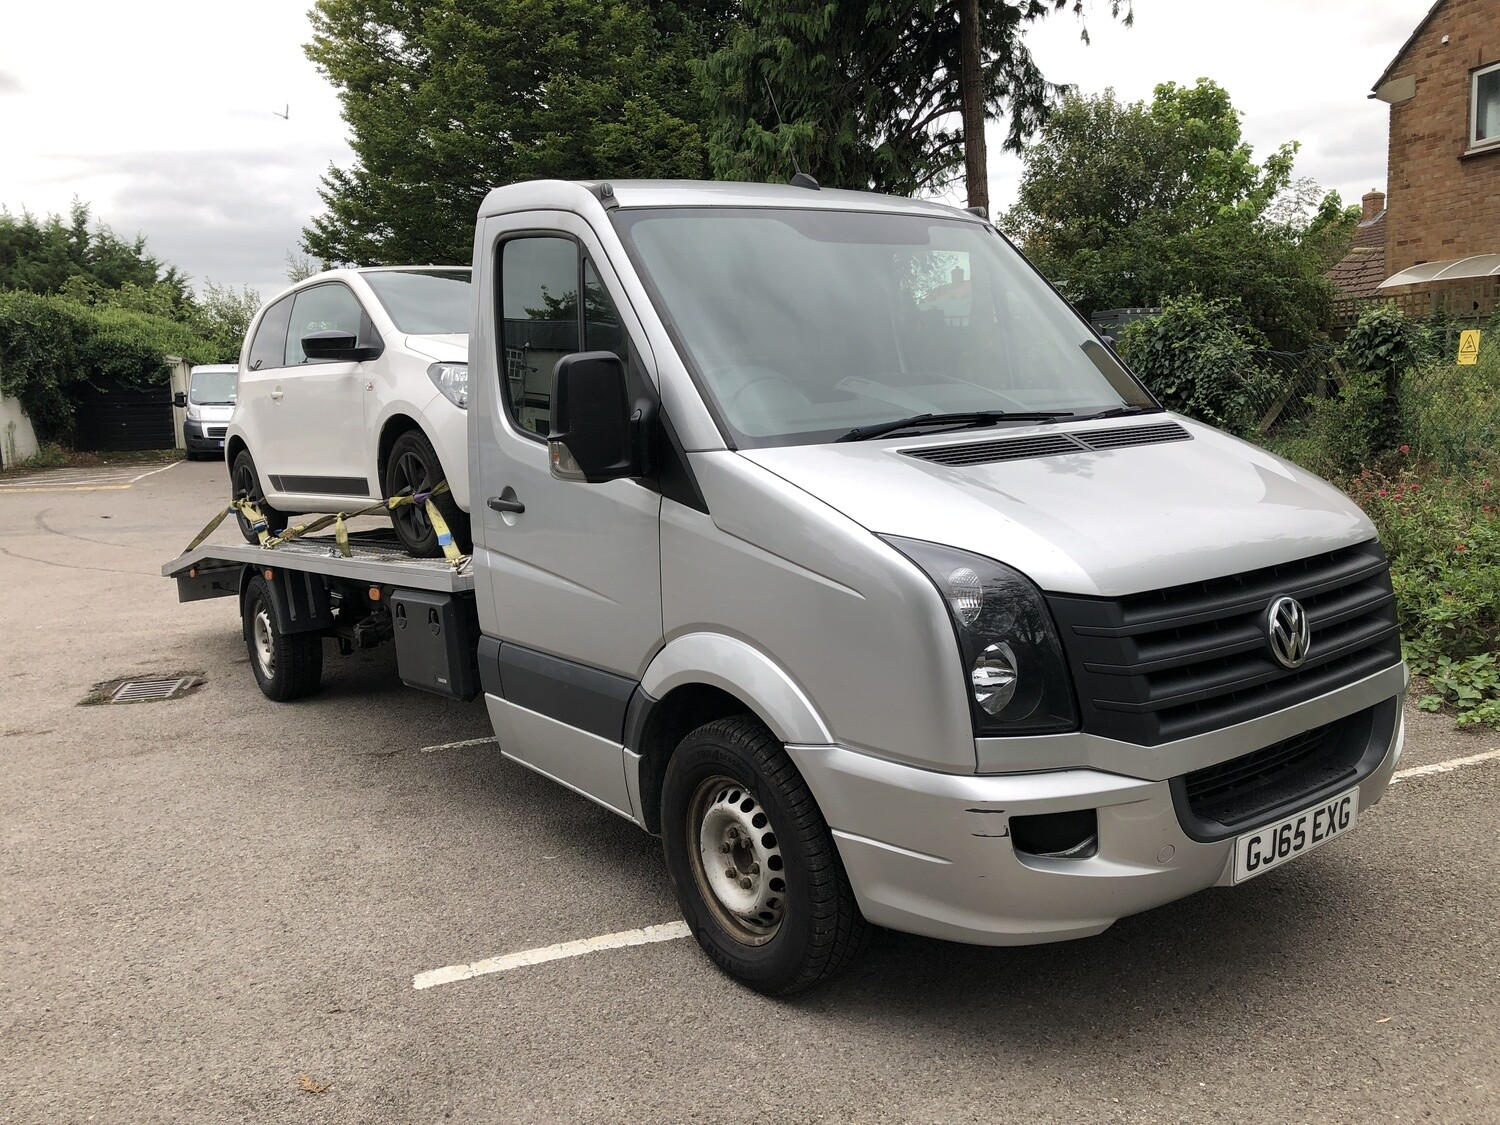 65 REG VW CRAFTER RECOVERY TRUCK,CR35 TDI 6 SPEED RECENT BED,WINCH ,AIR SUSPENSION 96K MILES ONLY **NO VAT**